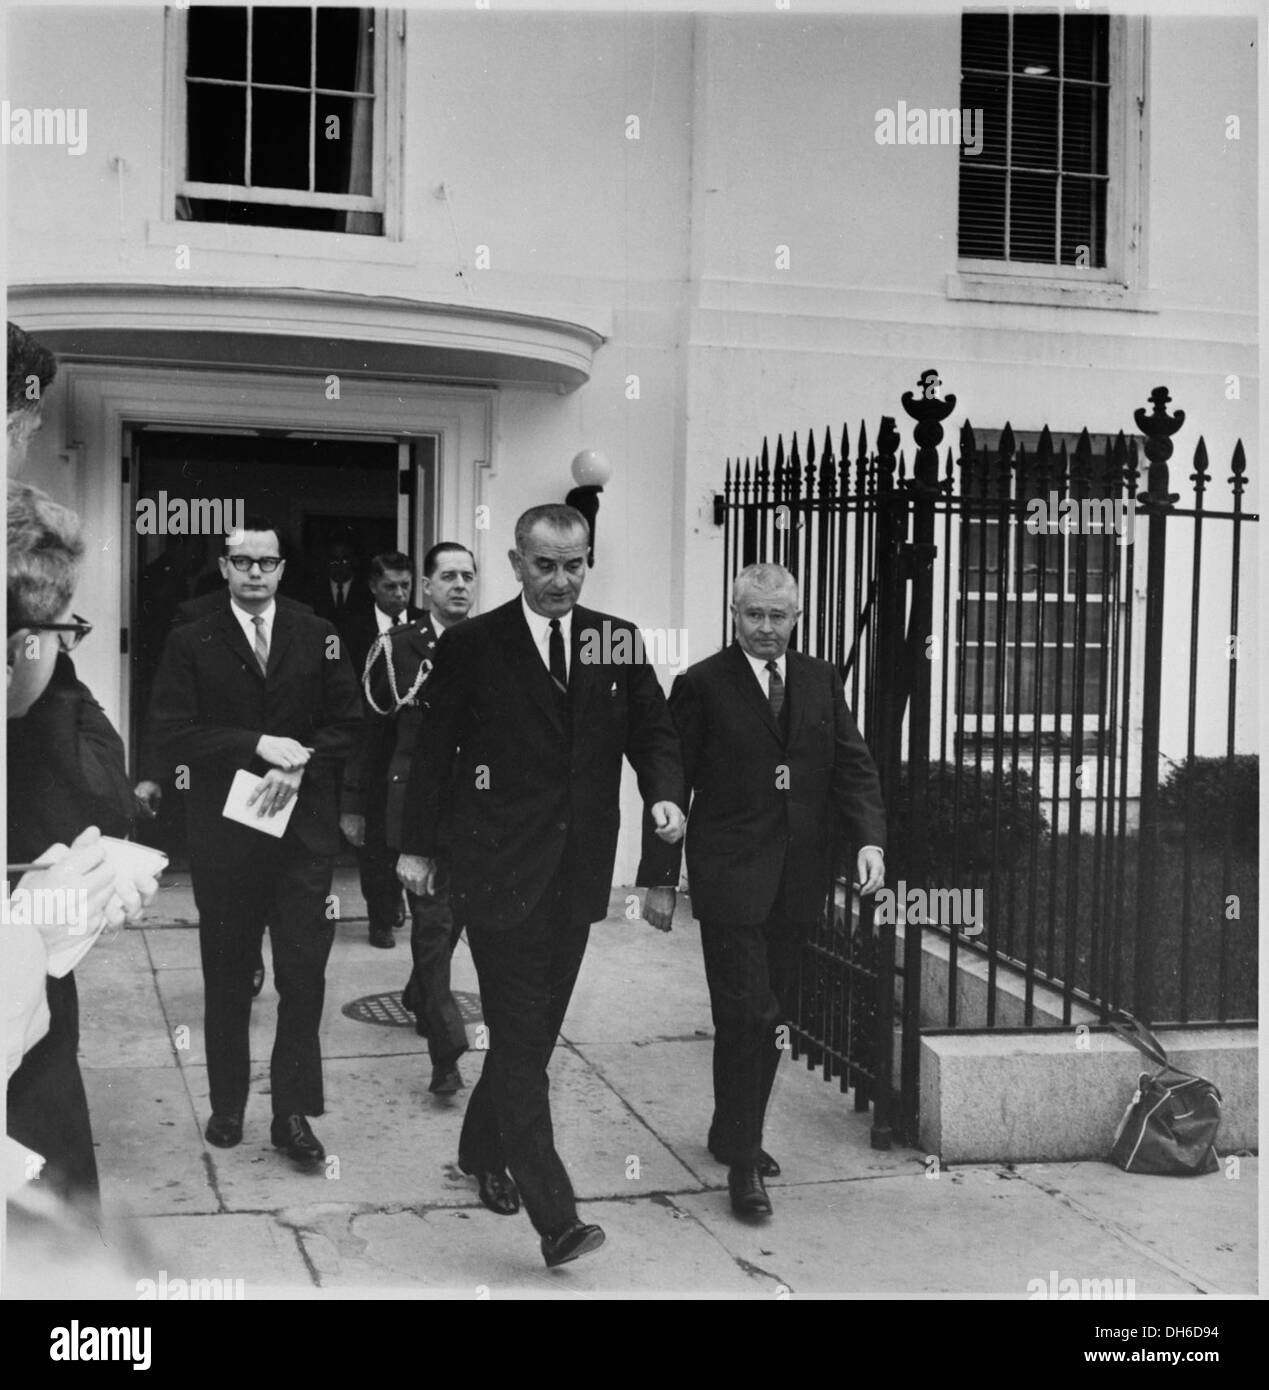 Photograph of President Lyndon B. Johnson leaving the White House, accompanied by aides, during the weekend of... 200447 - Stock Image